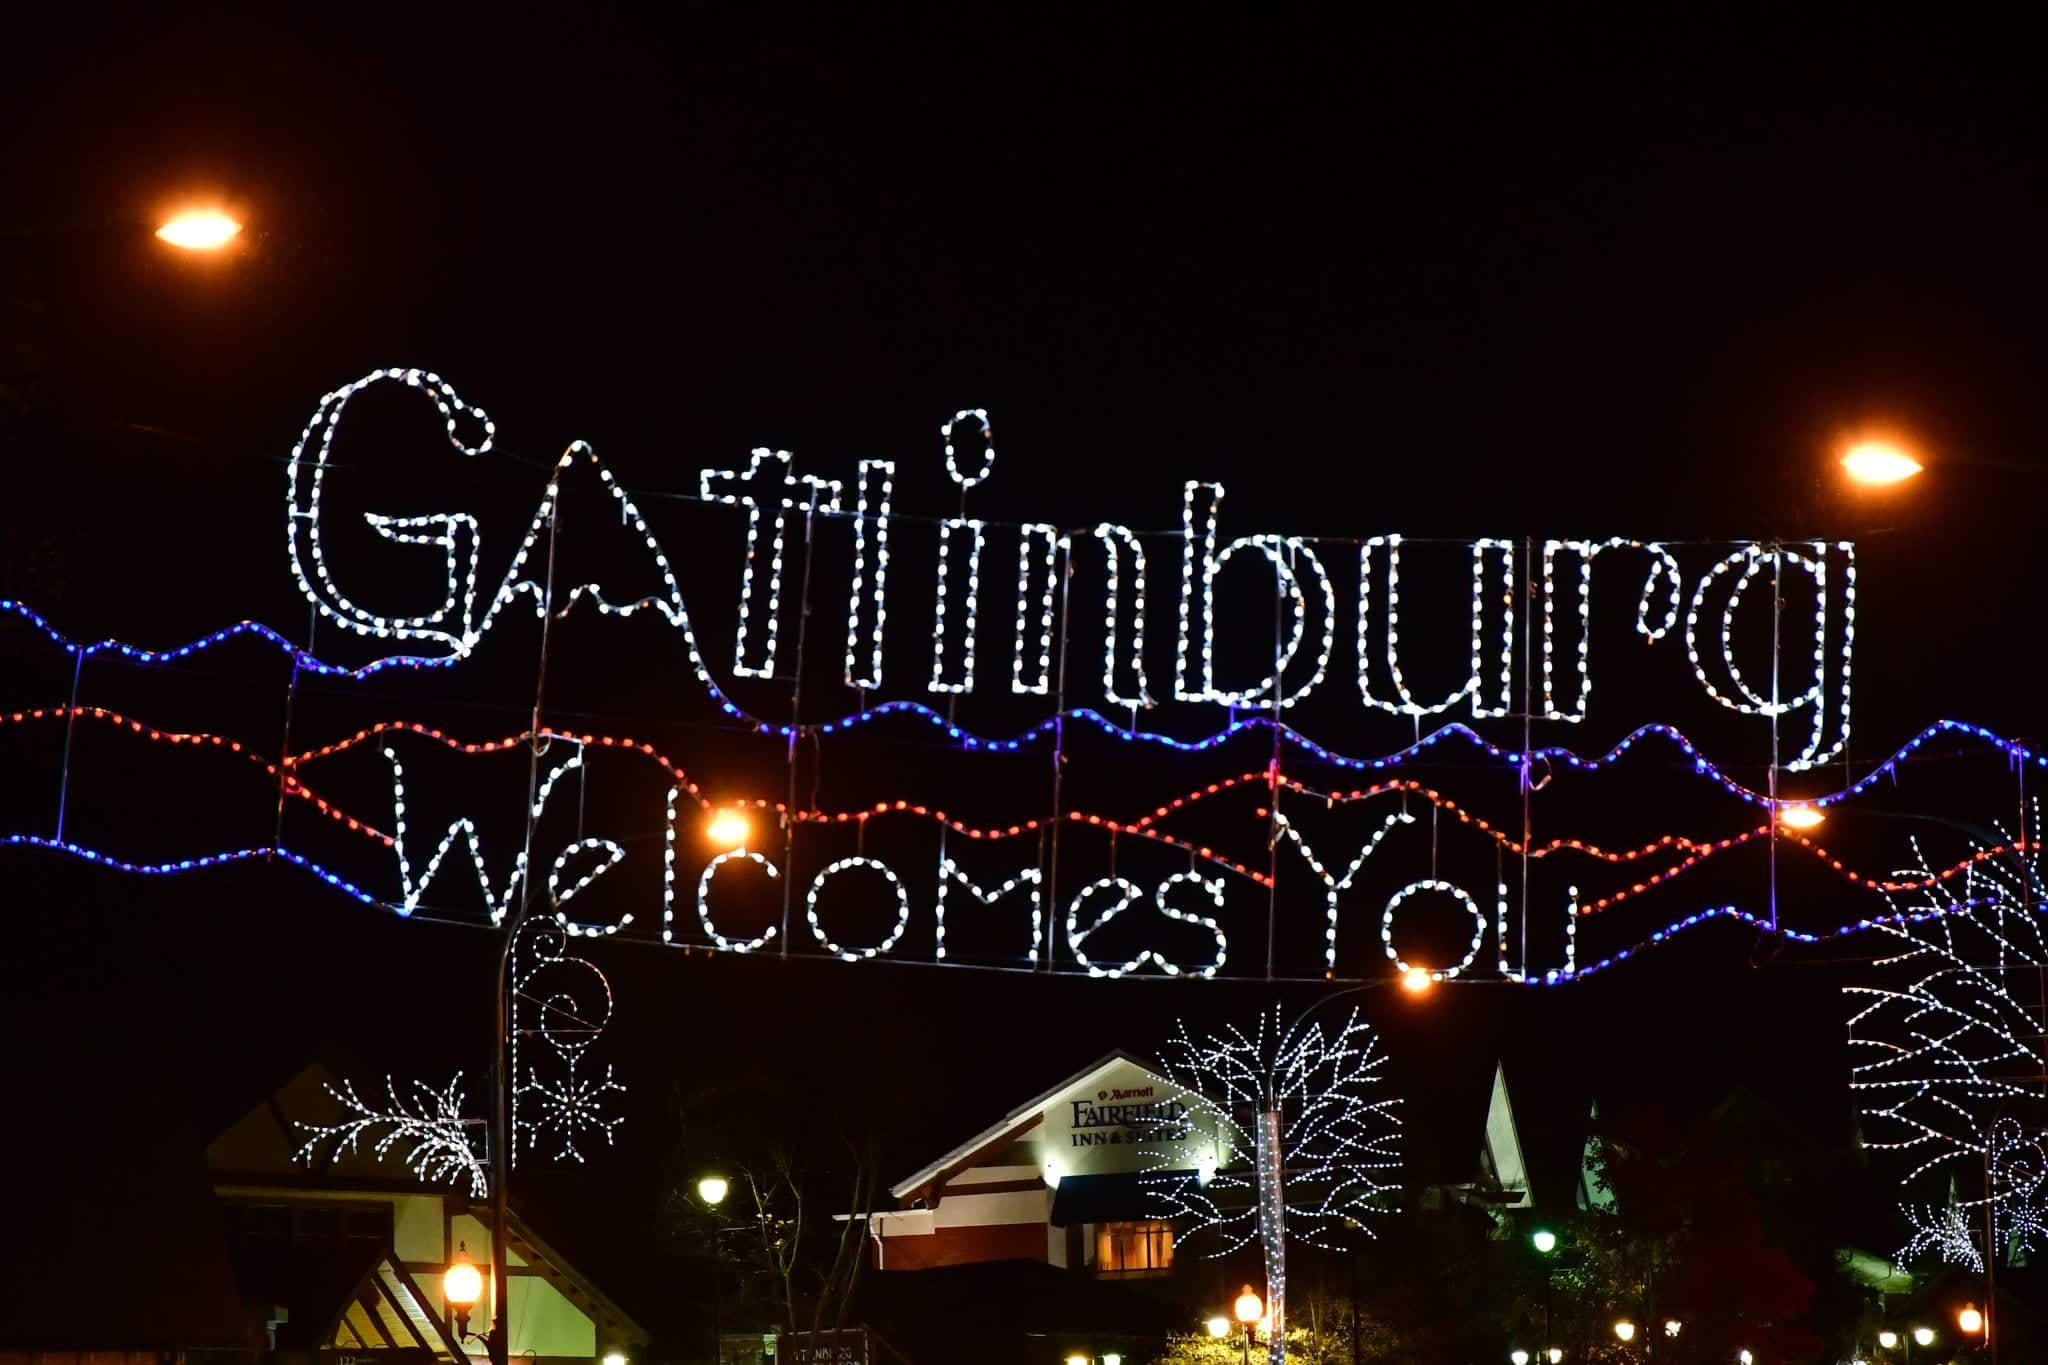 Gatlinburg Welcomes You Christmas Lights